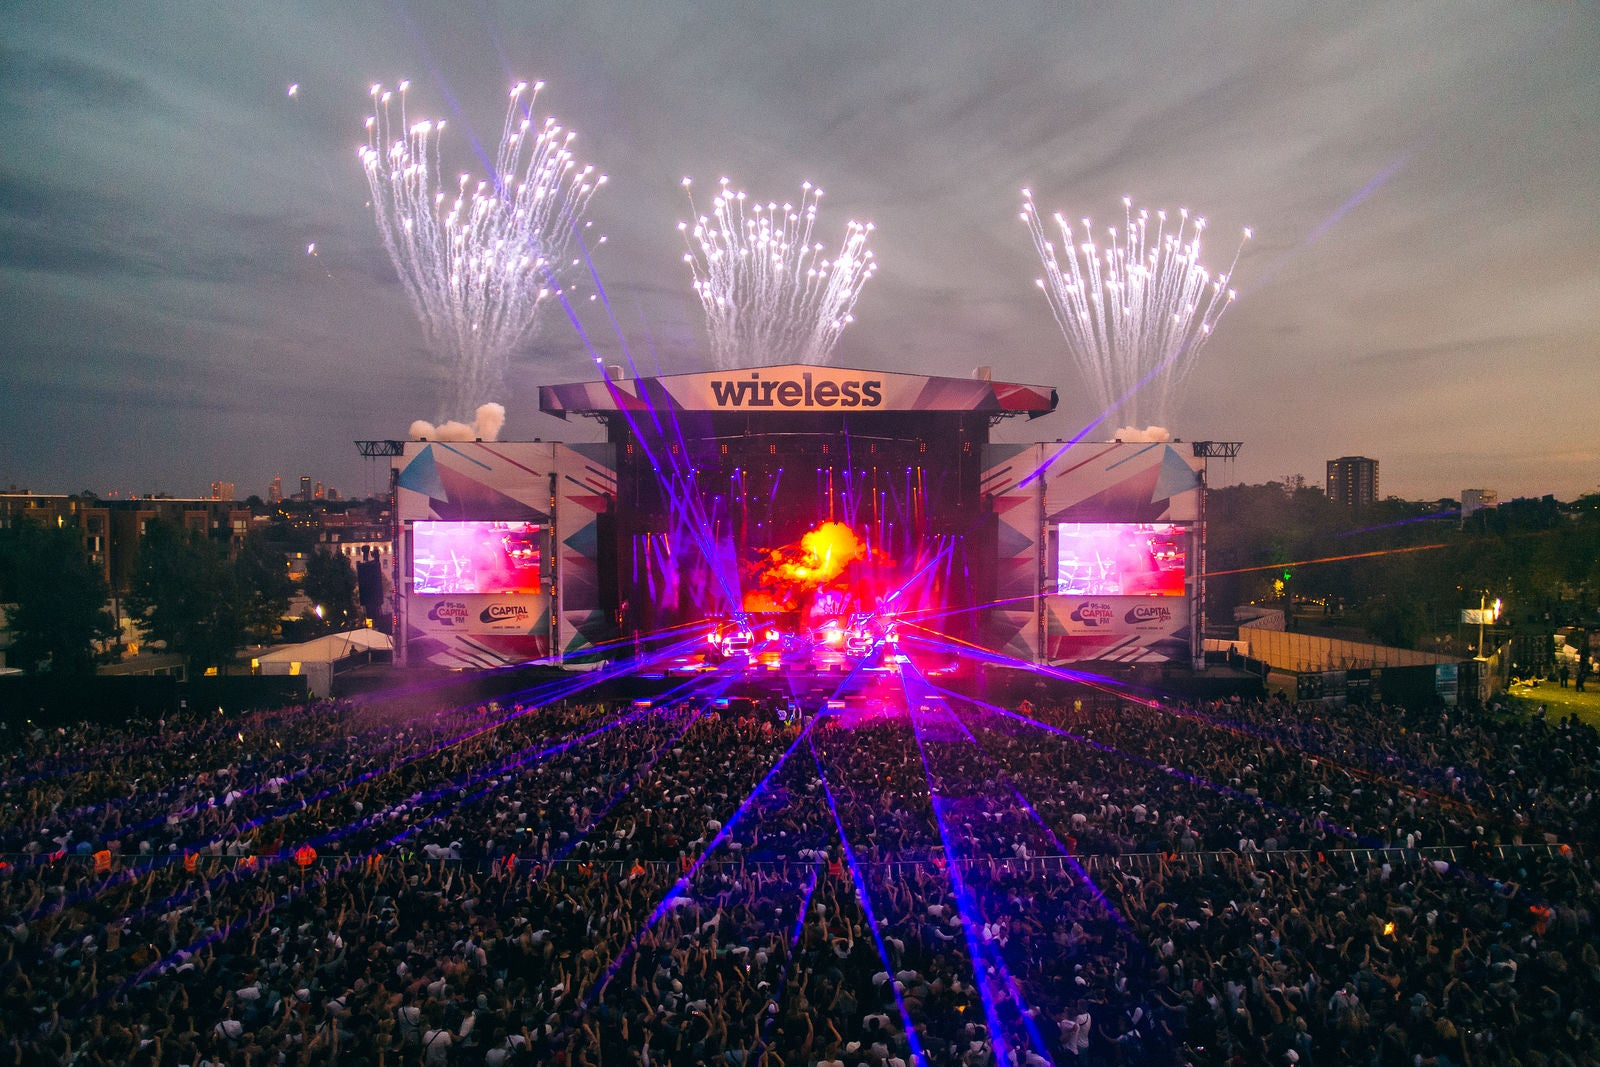 The Very Best Of Wireless 2016 In Photos...